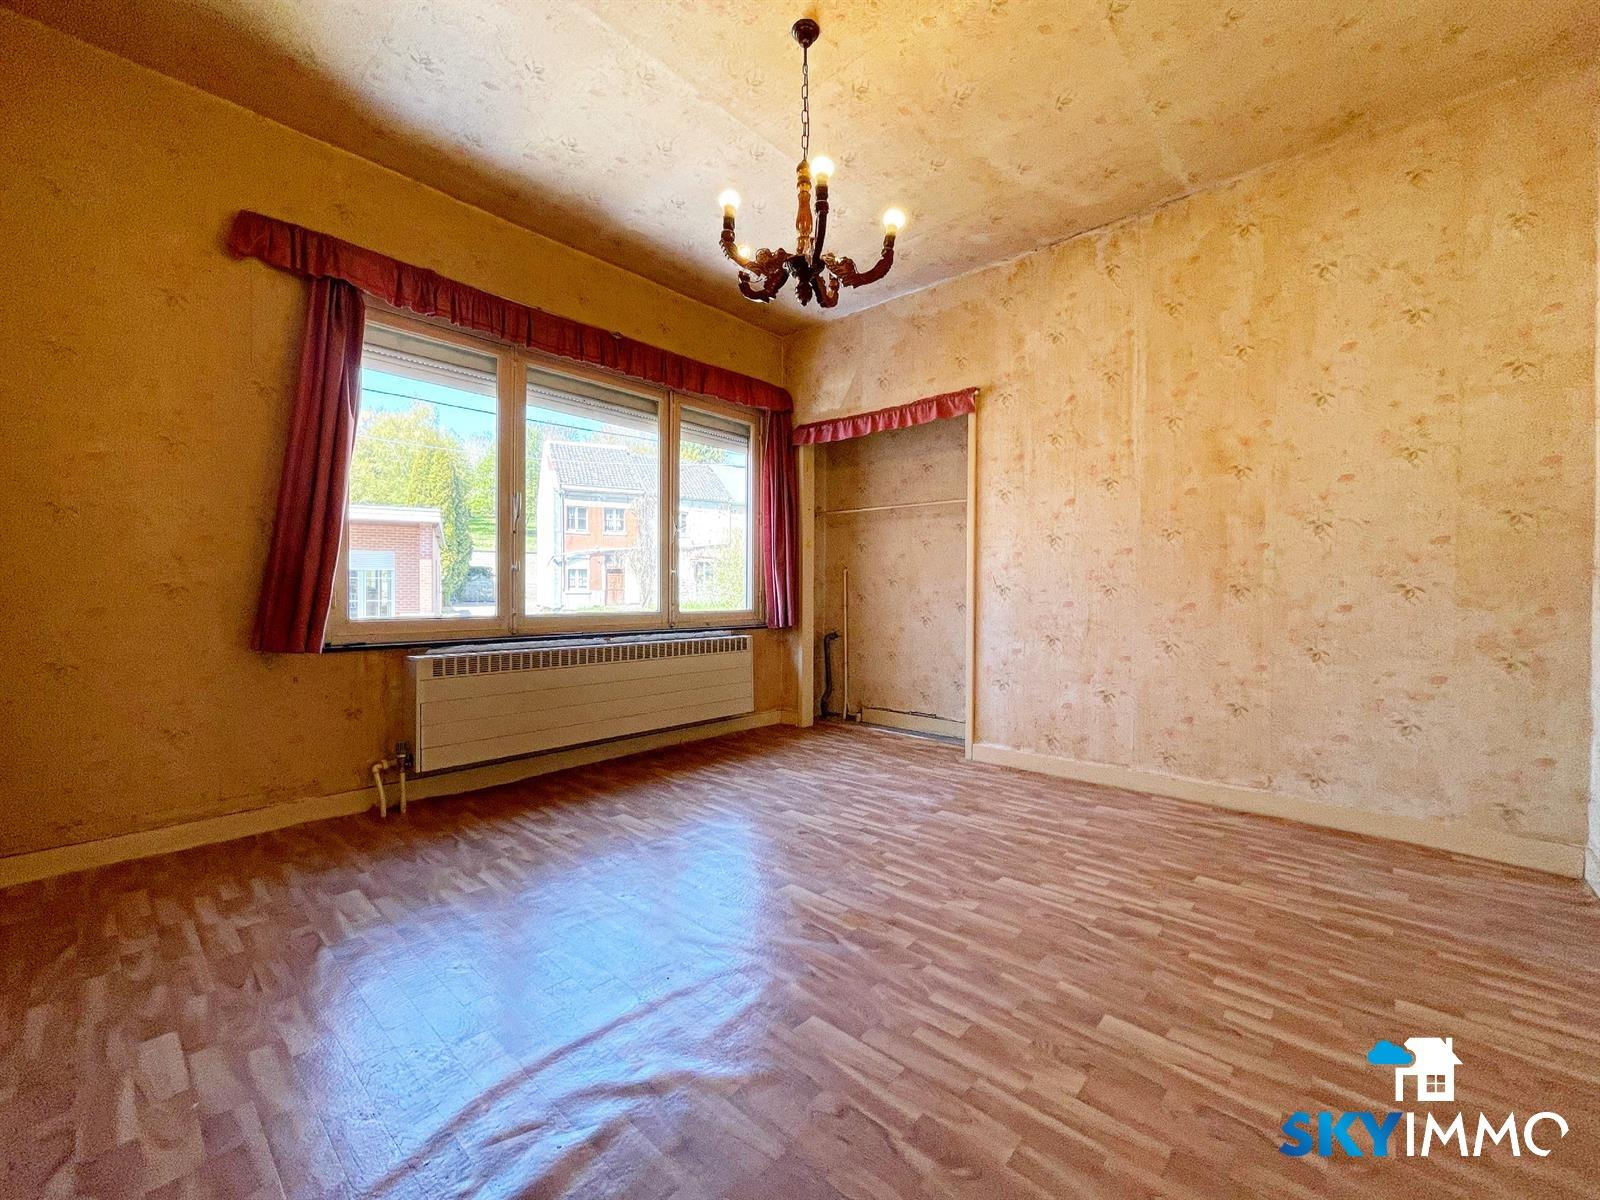 Huis - Flemalle - #4346611-25